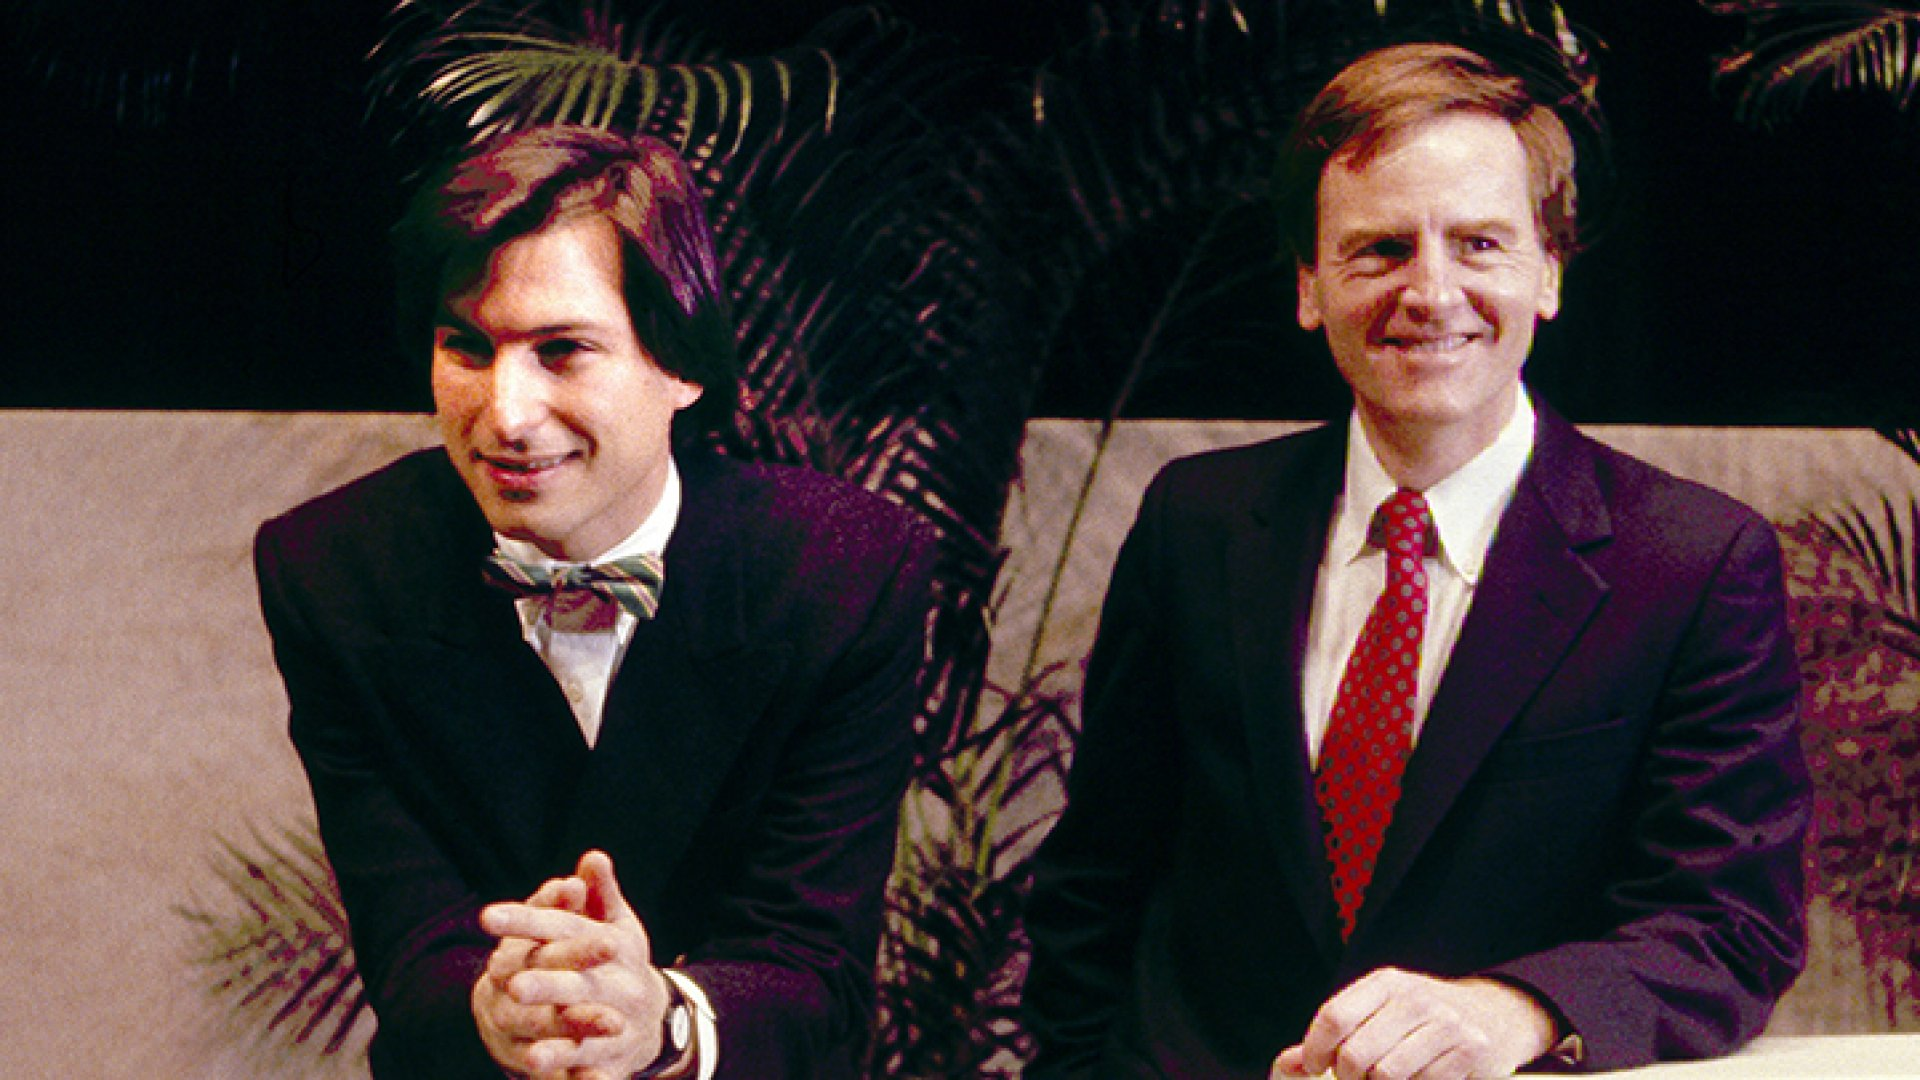 Ex-Apple CEO John Sculley on Steve Jobs: 'We Were Meant to Be a Team'